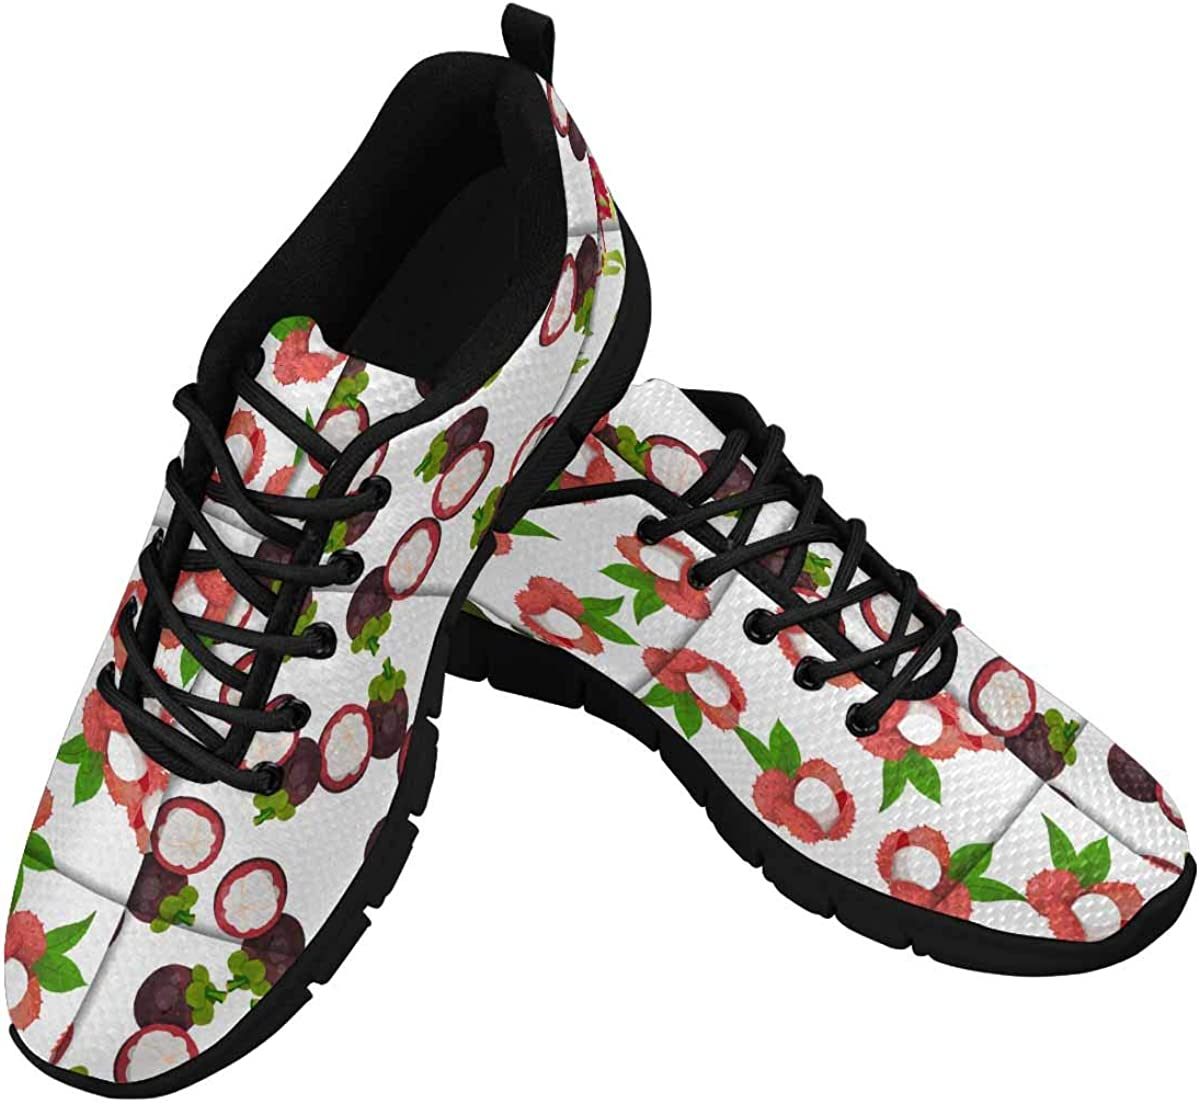 INTERESTPRINT Fresh and Yummy Avocado Women's Athletic Walking Running Sneakers Comfortable Lightweight Shoes